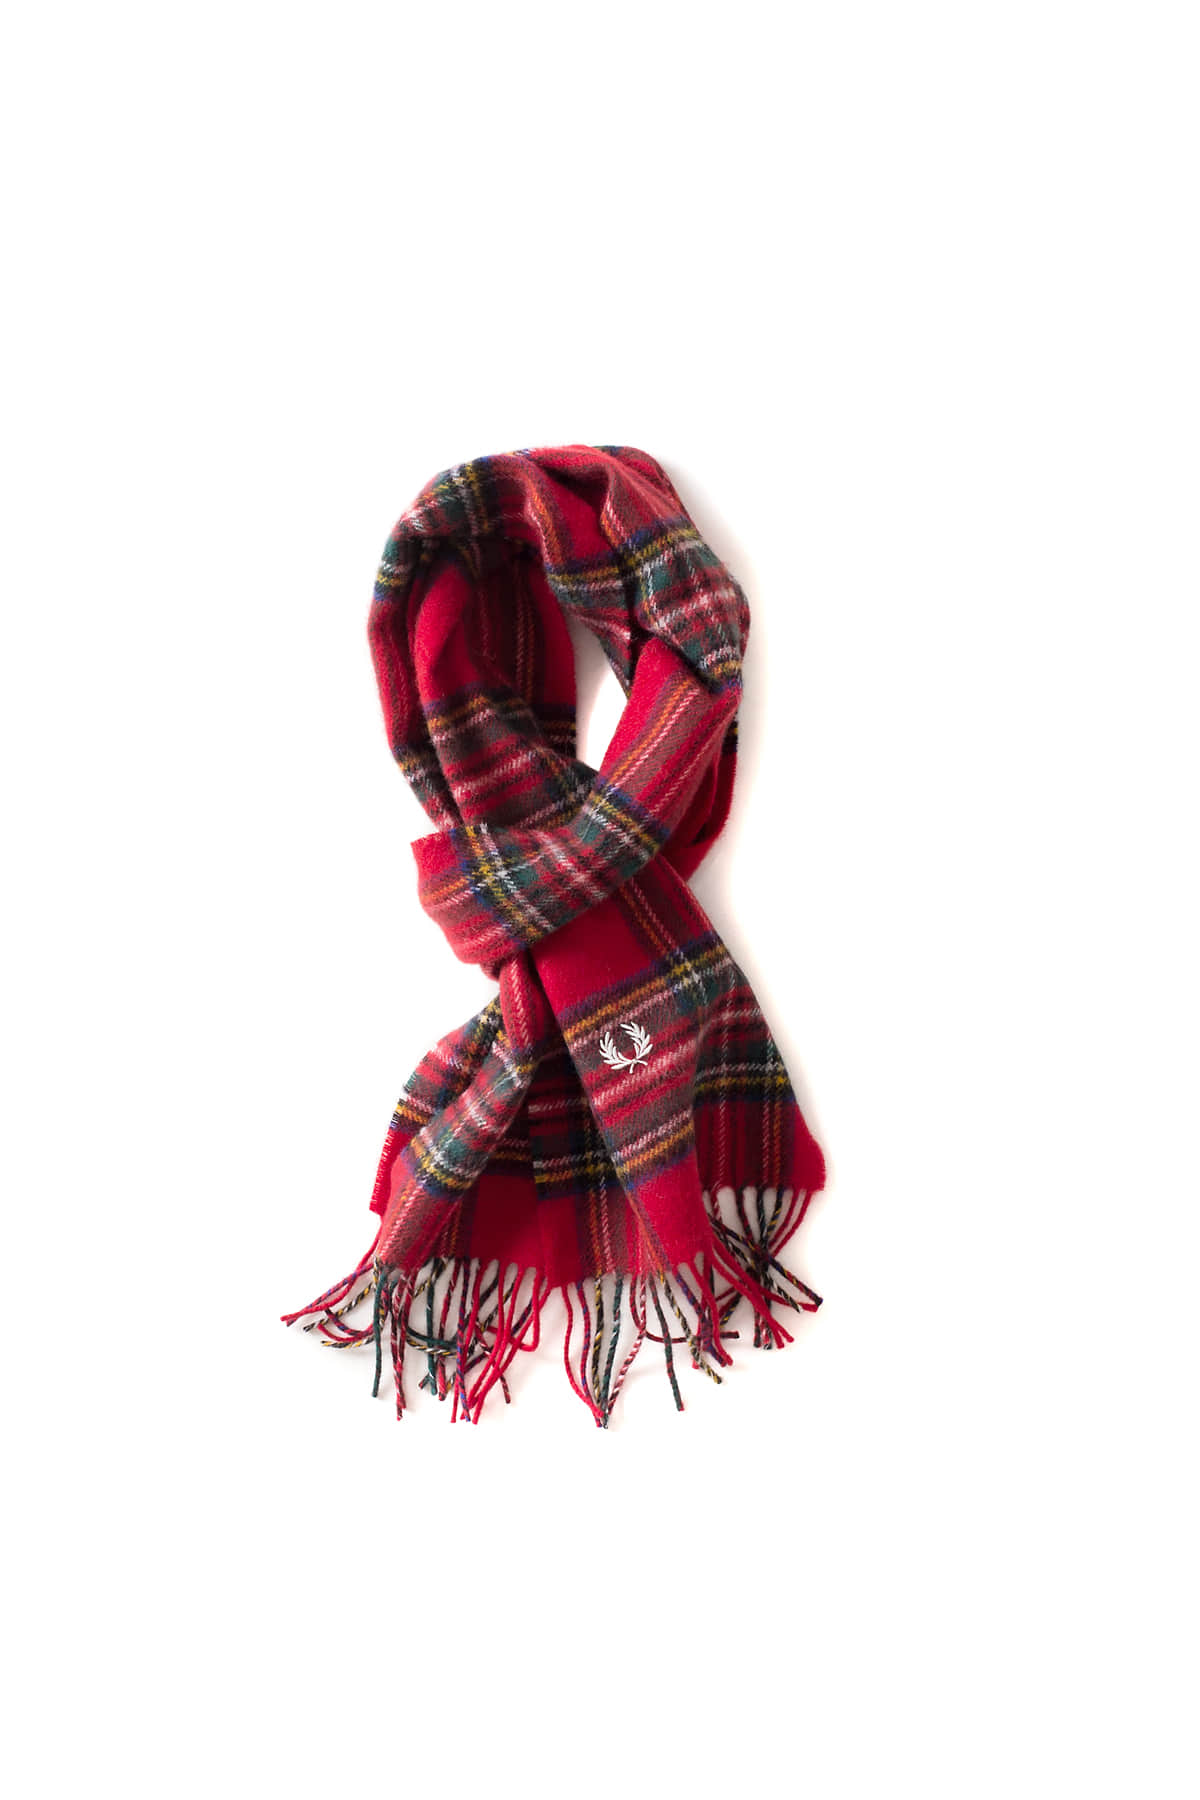 FRED PERRY : Royal Stewart Tartan Scarf (Red)